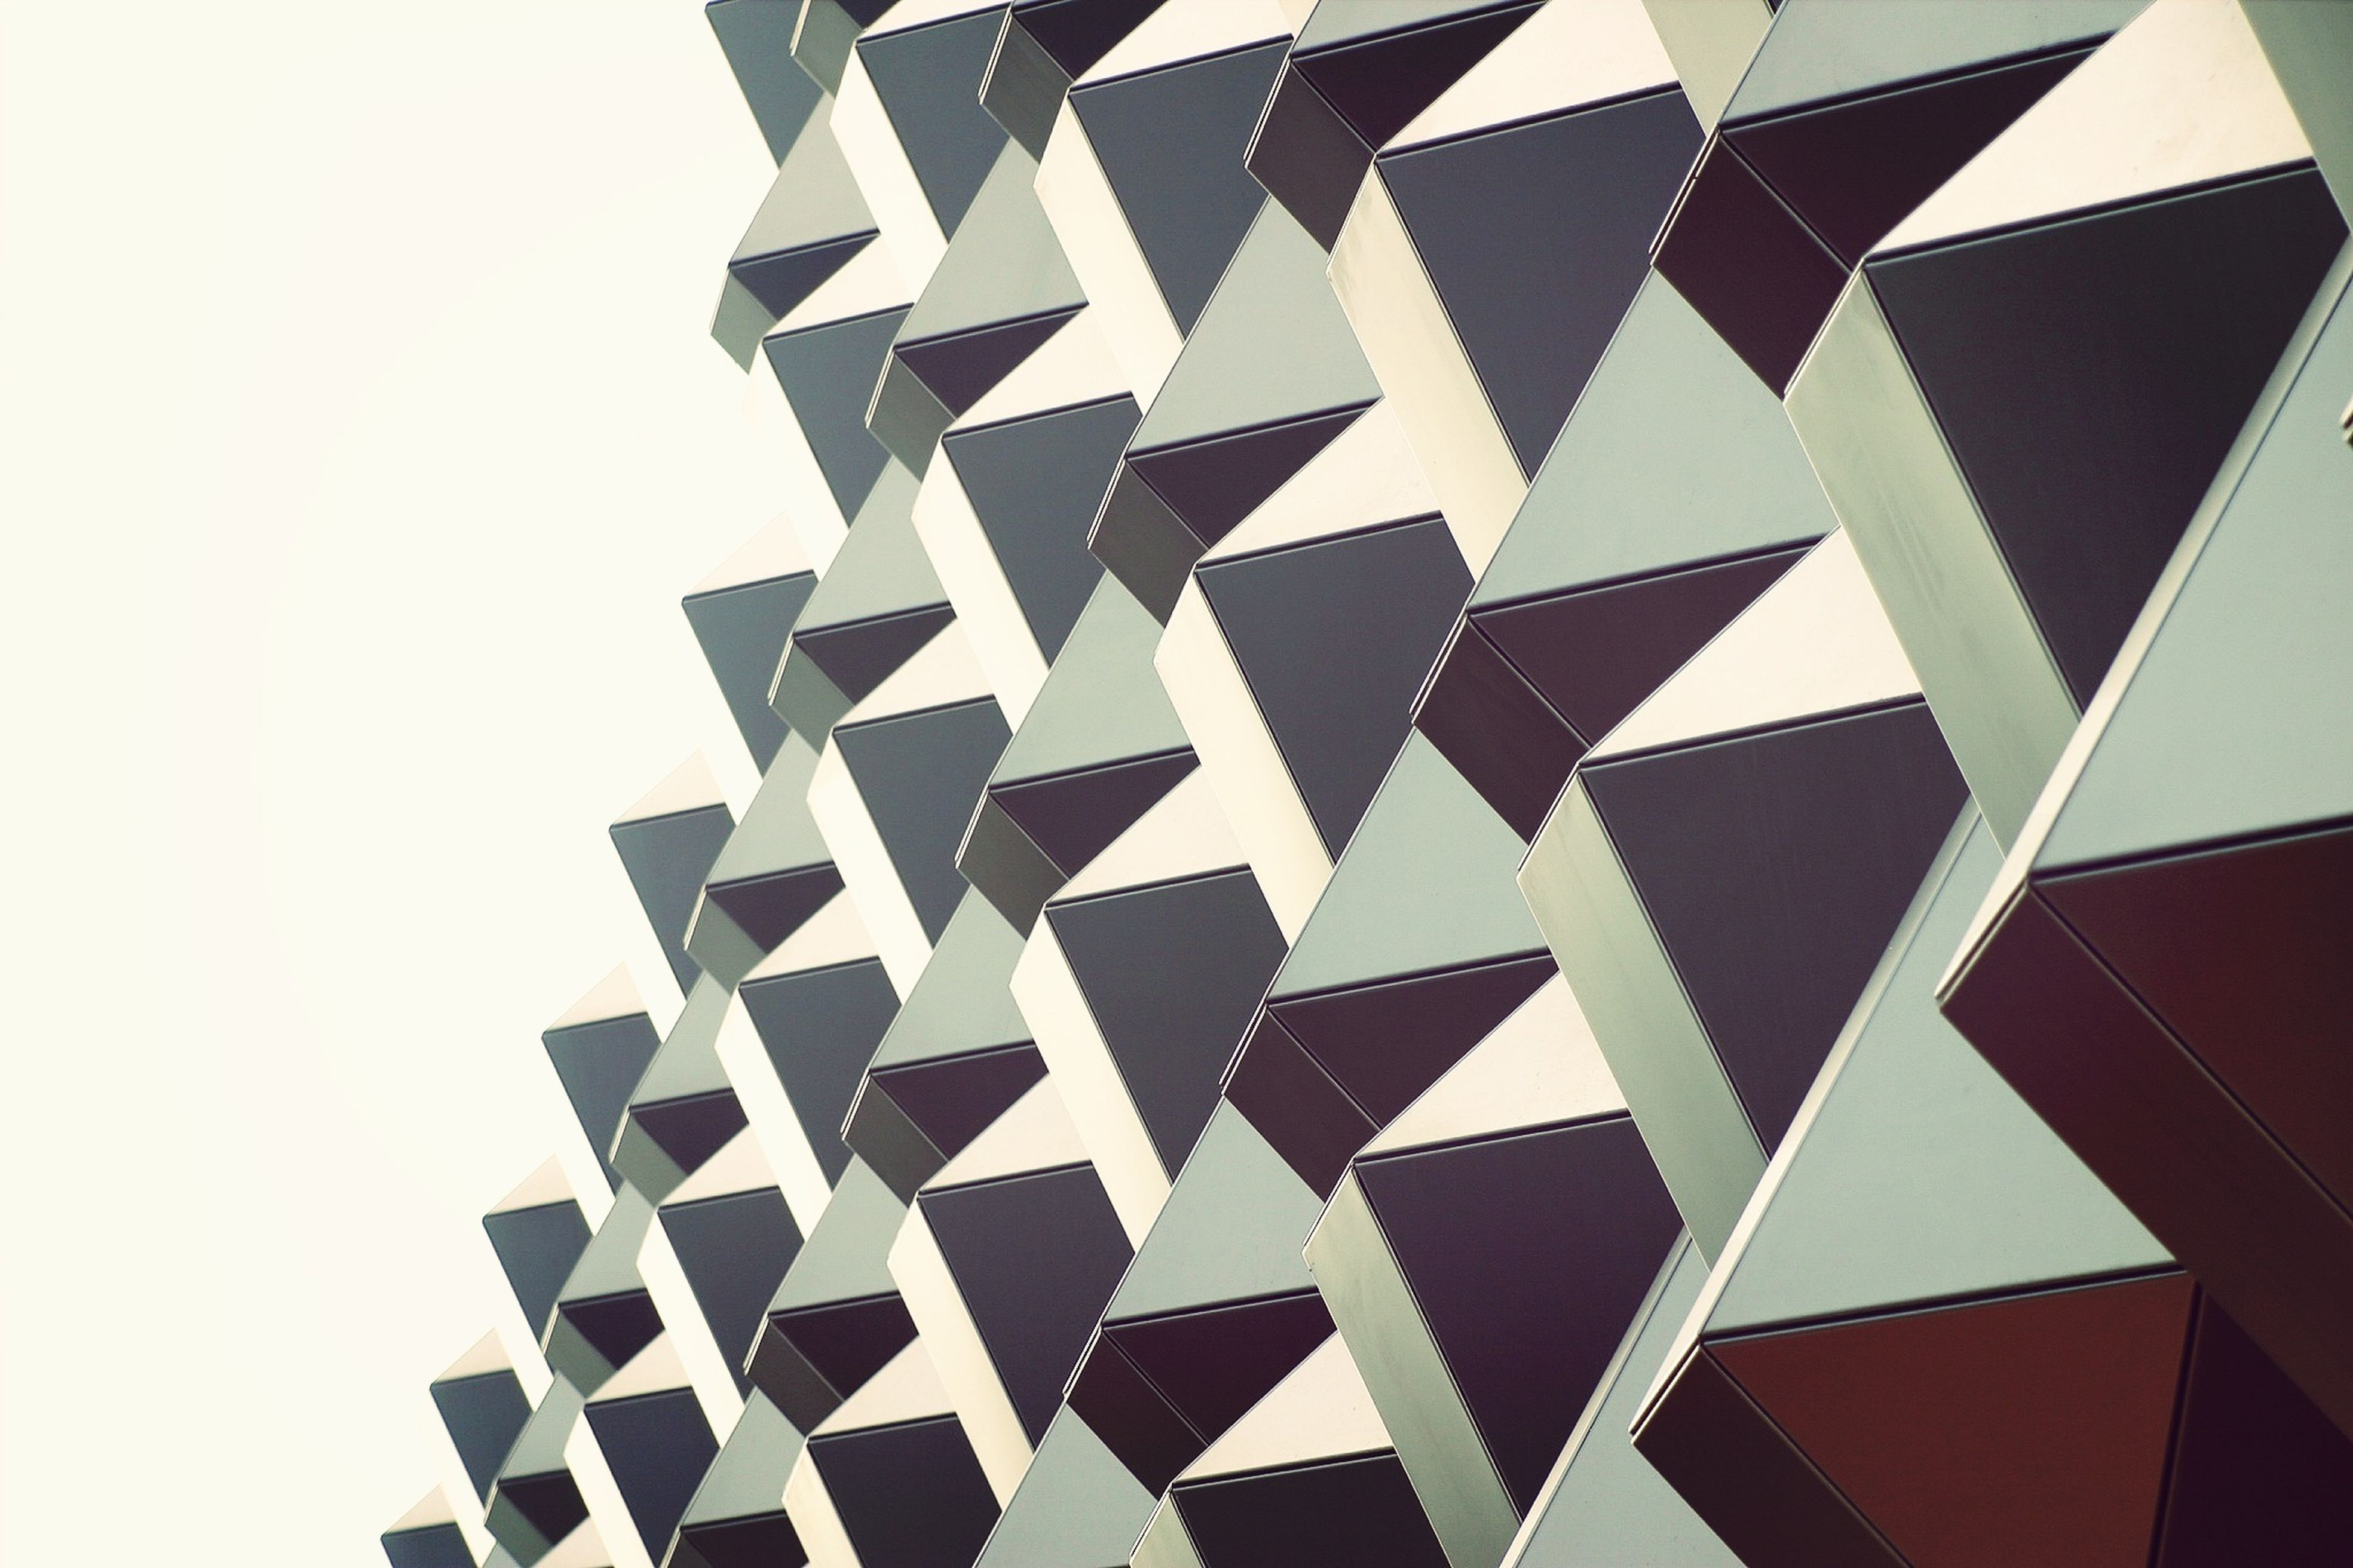 pattern, design, architecture, repetition, backgrounds, full frame, built structure, low angle view, geometric shape, shape, indoors, in a row, modern, building exterior, architectural feature, no people, abstract, ceiling, textured, close-up